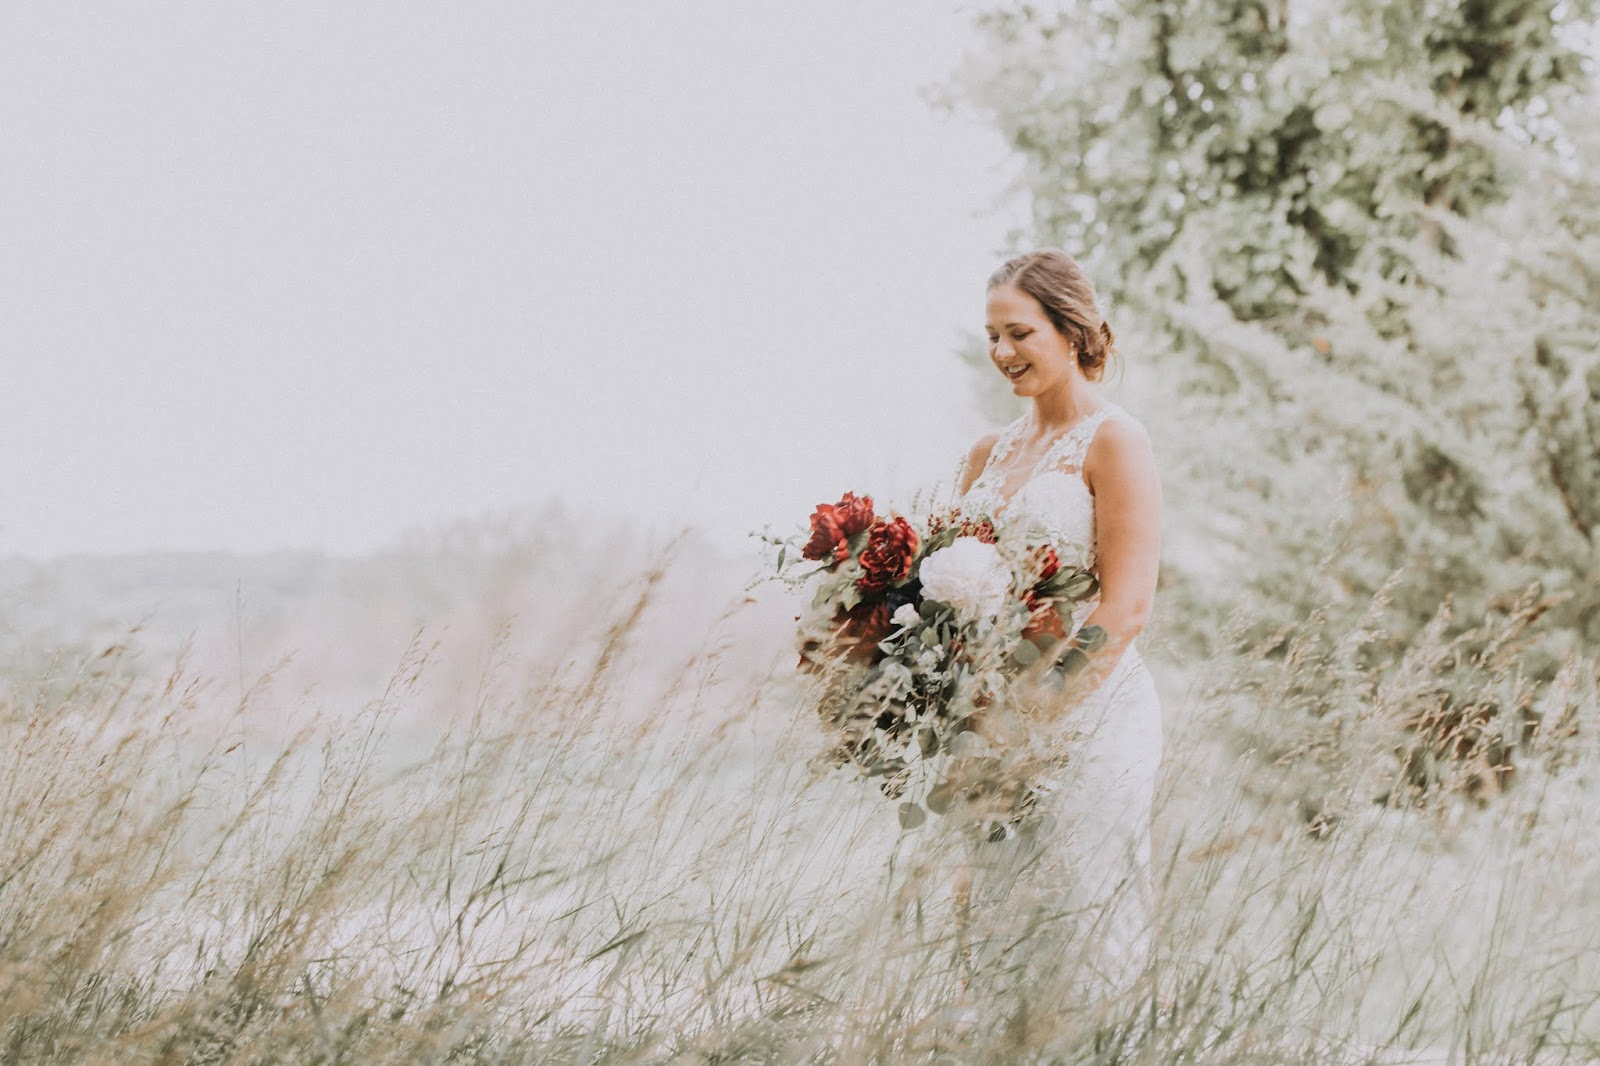 Bridal Photography in Kansas